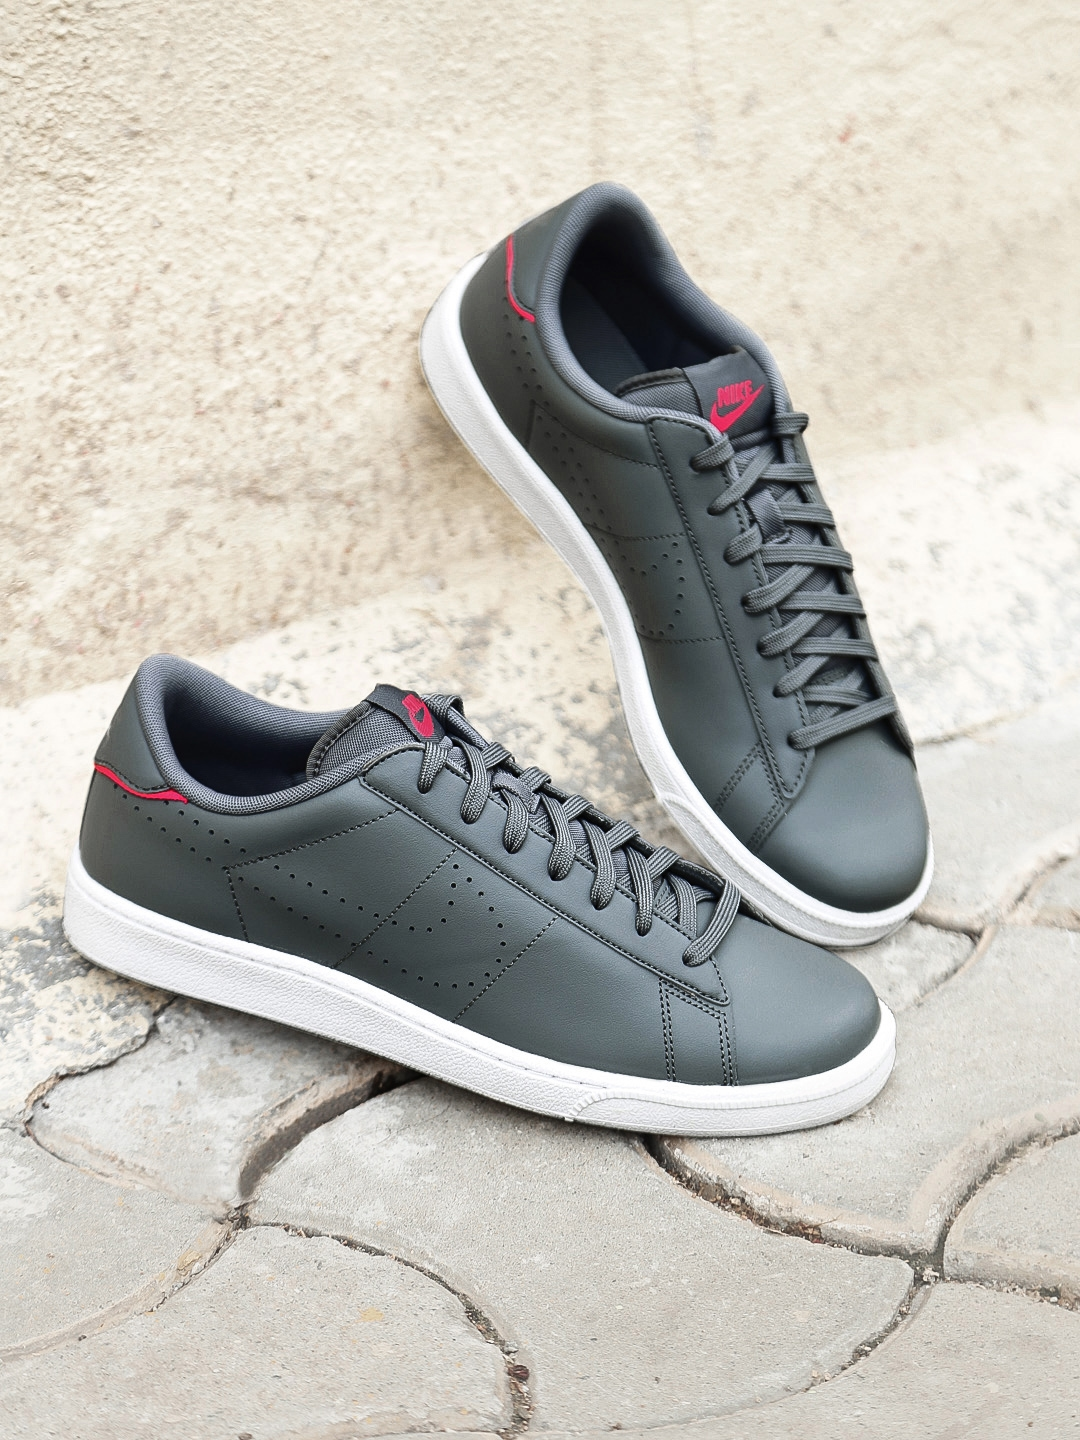 sale retailer fe023 d69d2 Nike Men Grey Leather TENNIS CLASSIC CS Shoes